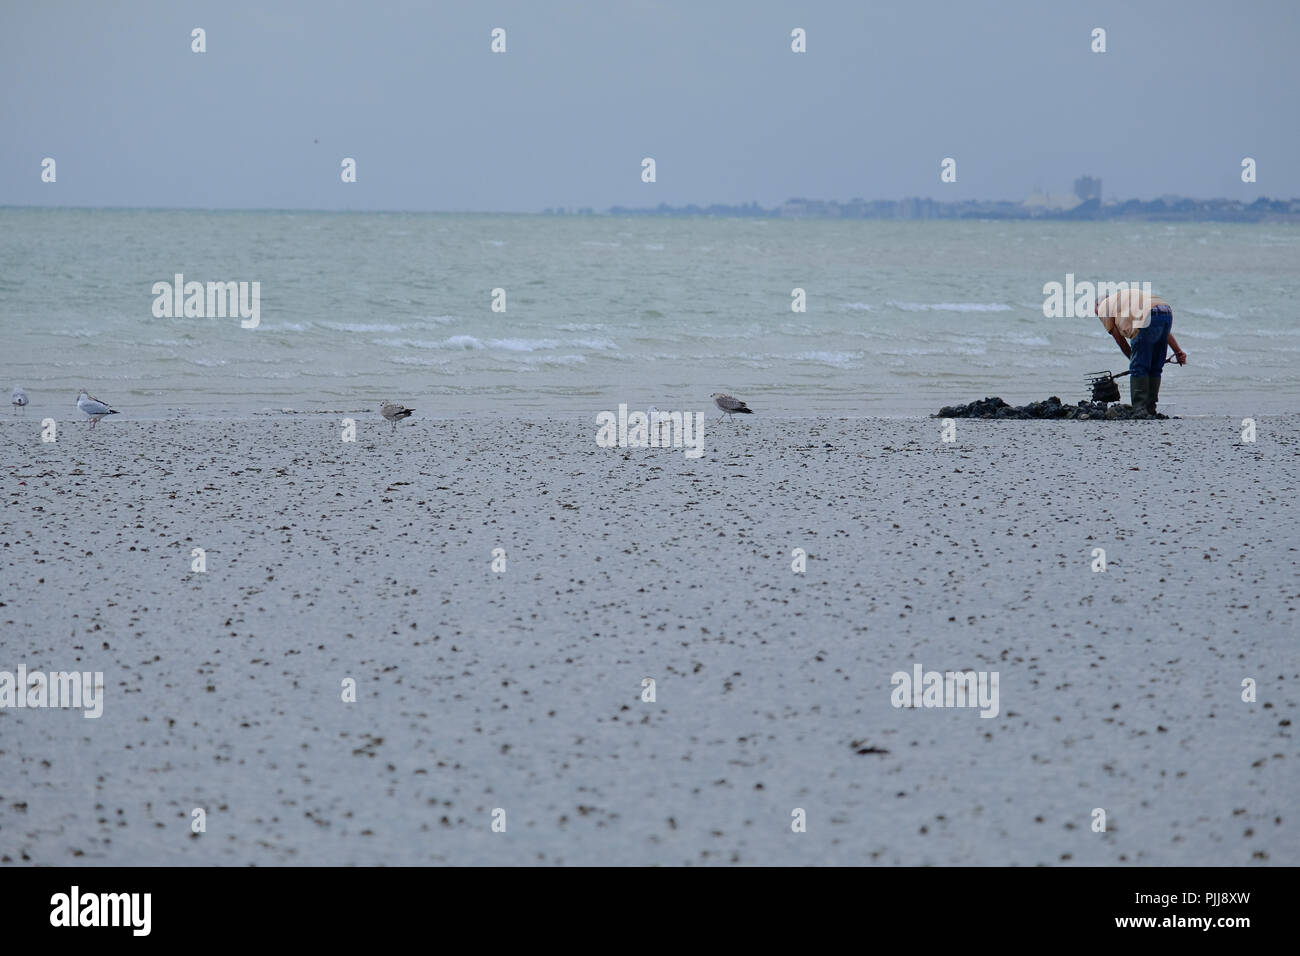 Elderly man digging for Lugworms in the sand at low tide on UK beach. Seagulls alongside waiting for scraps. - Stock Image